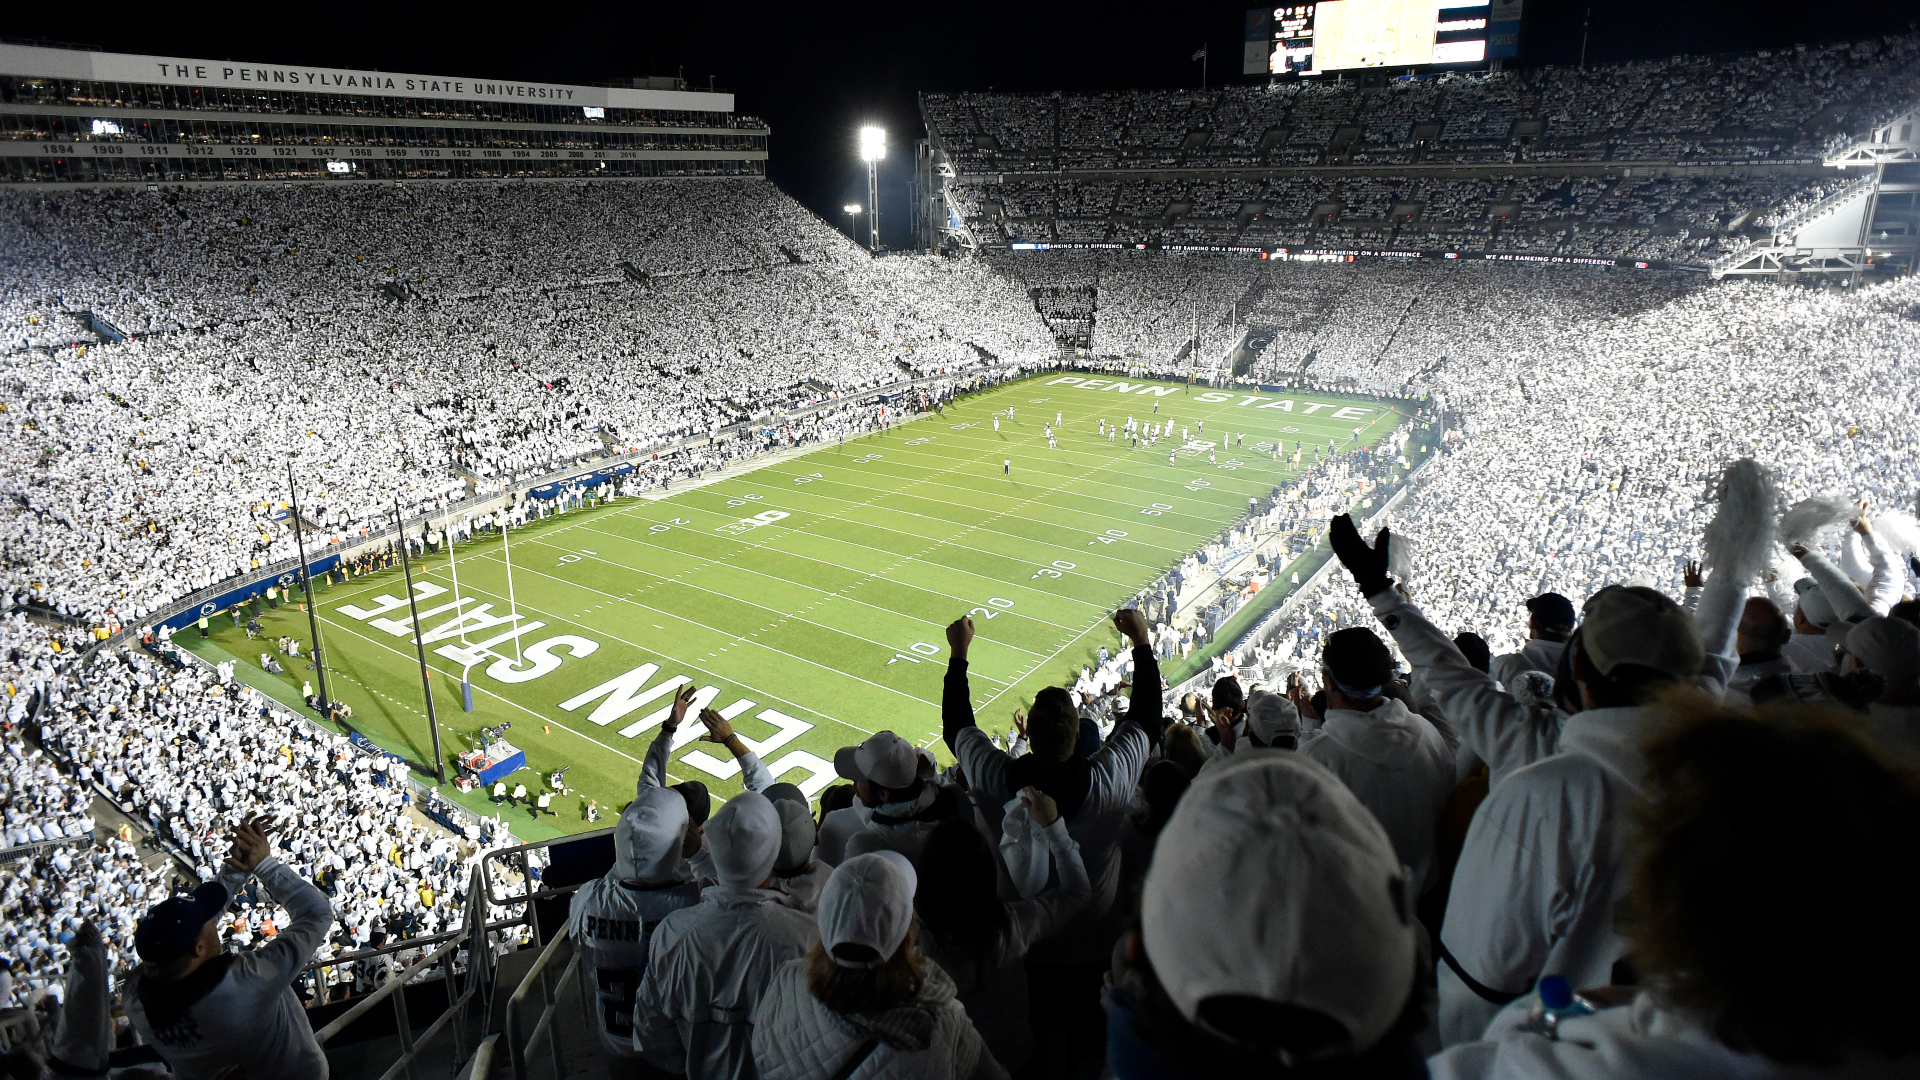 Penn State's White Out games, explained: How 'stroke of genius' become one of college football's...